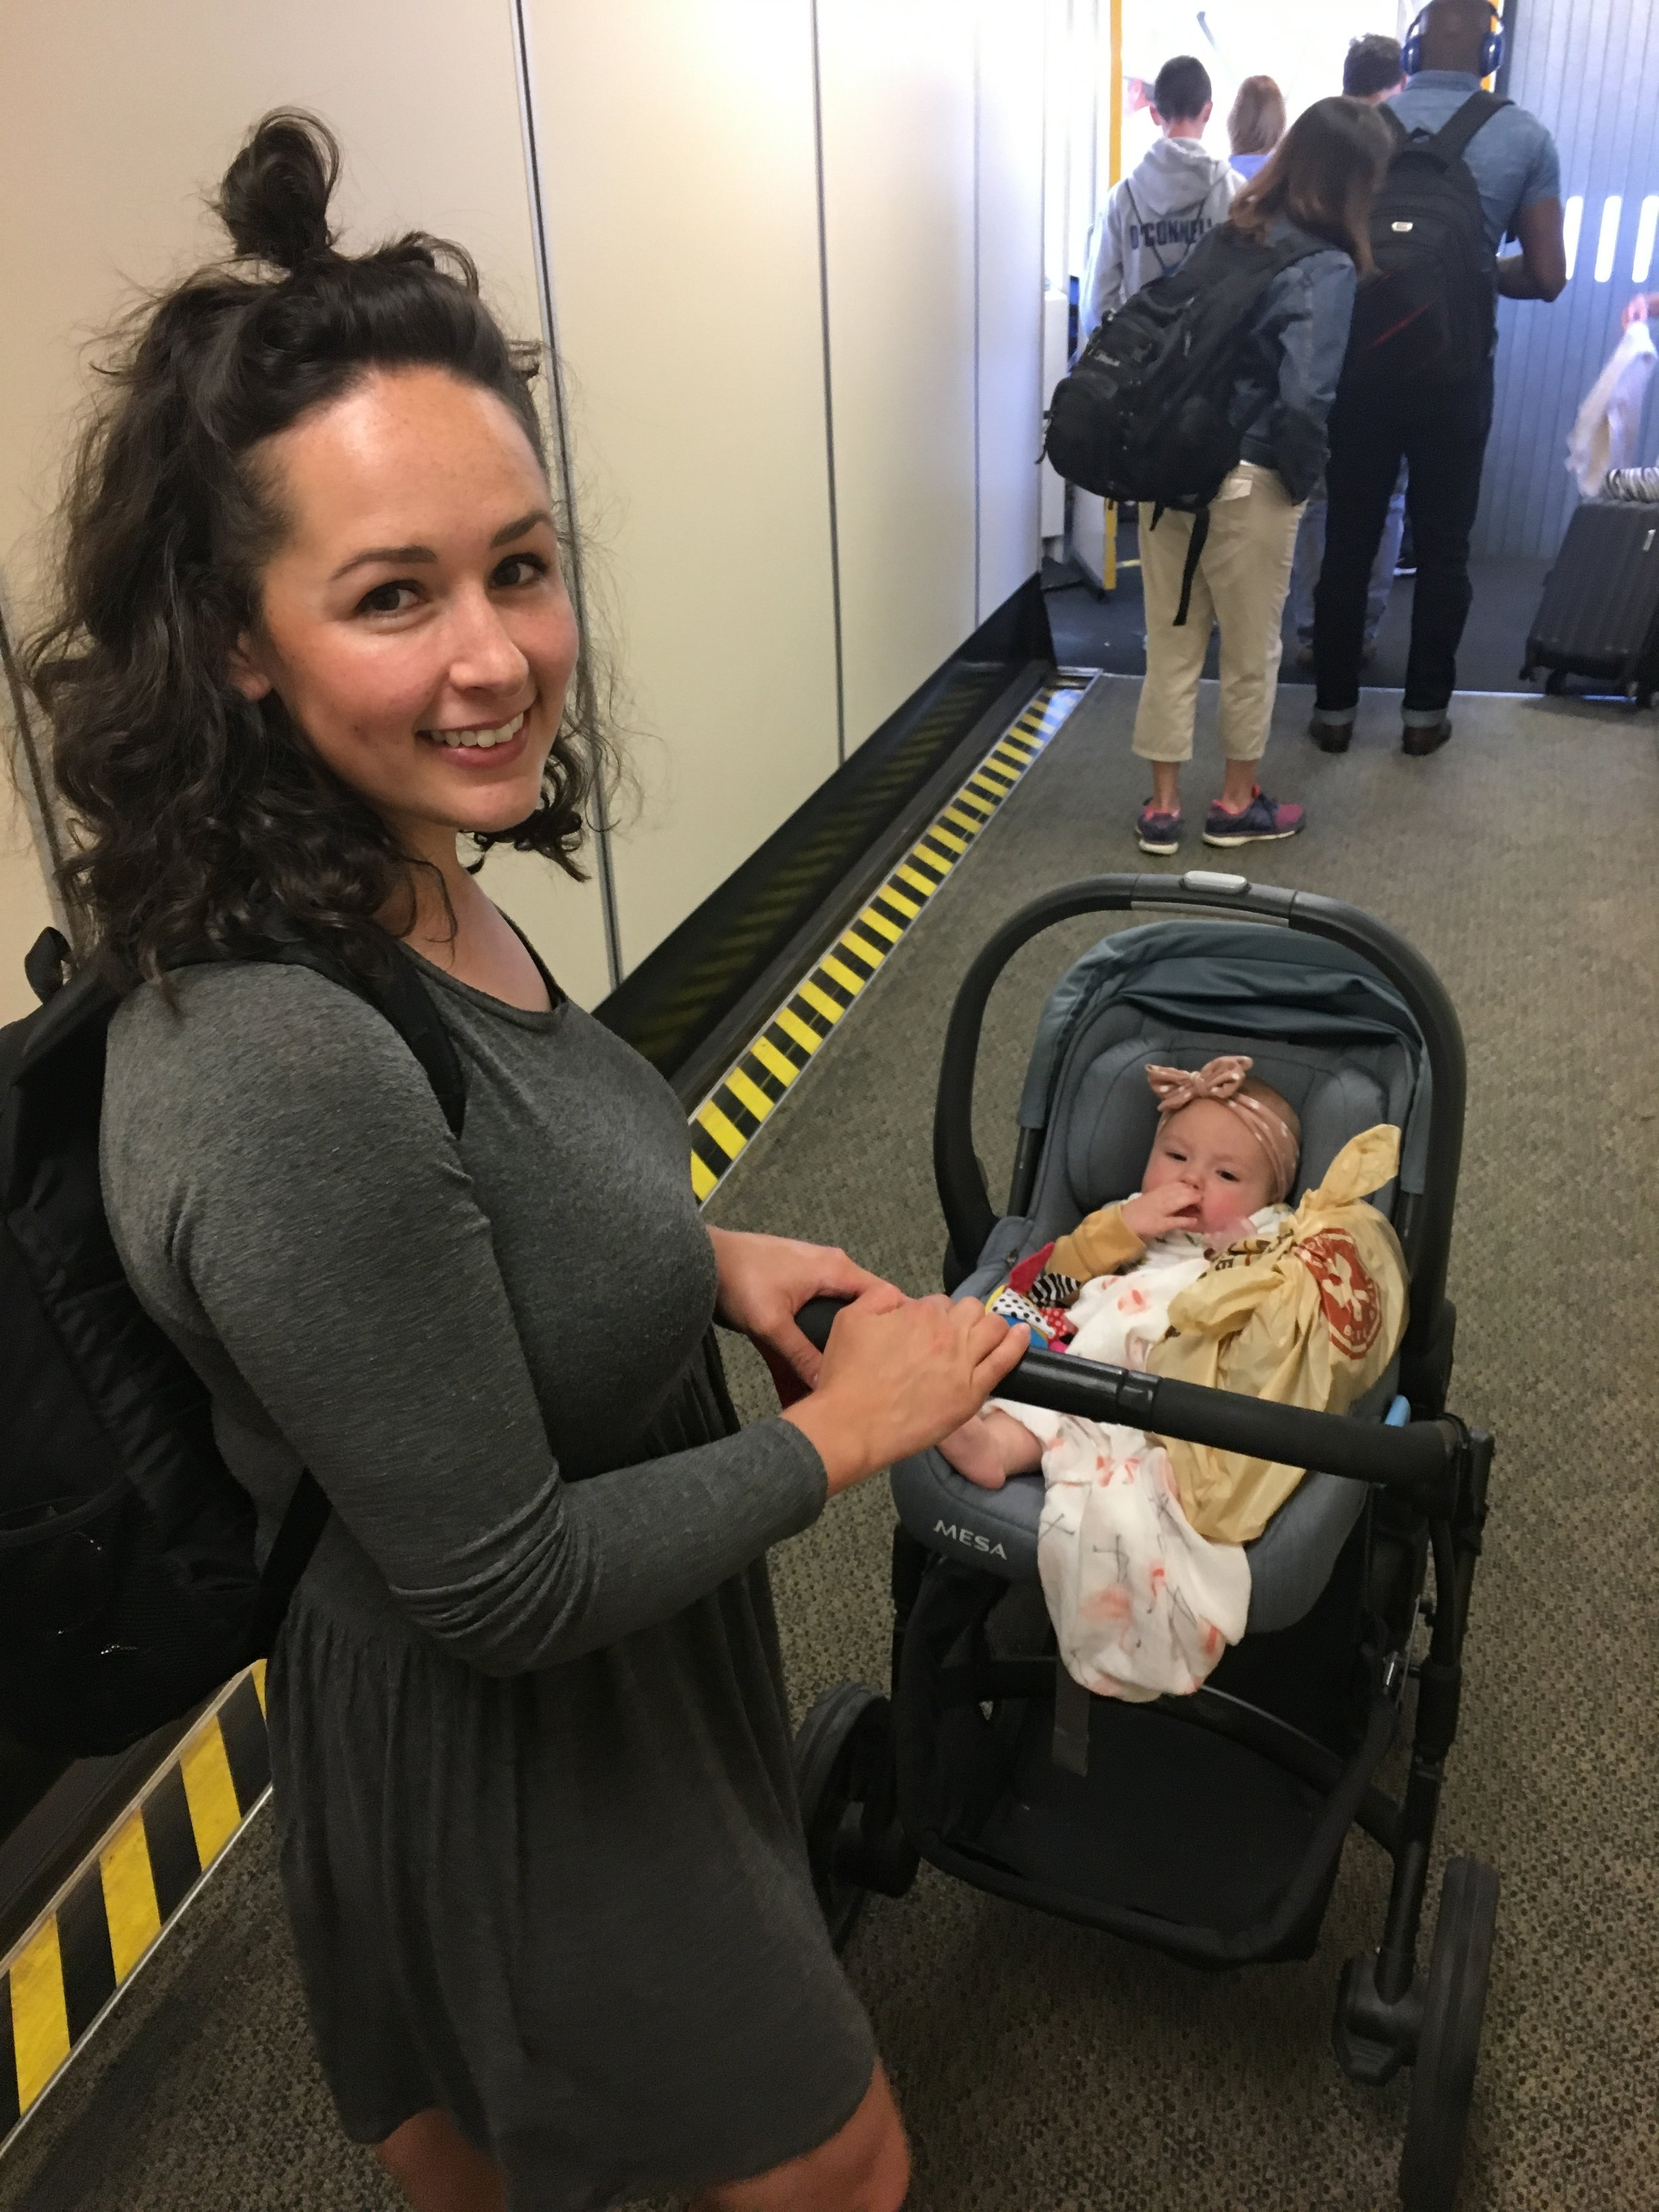 When we got to the gate I removed the car seat, folded the stroller, and boarded.